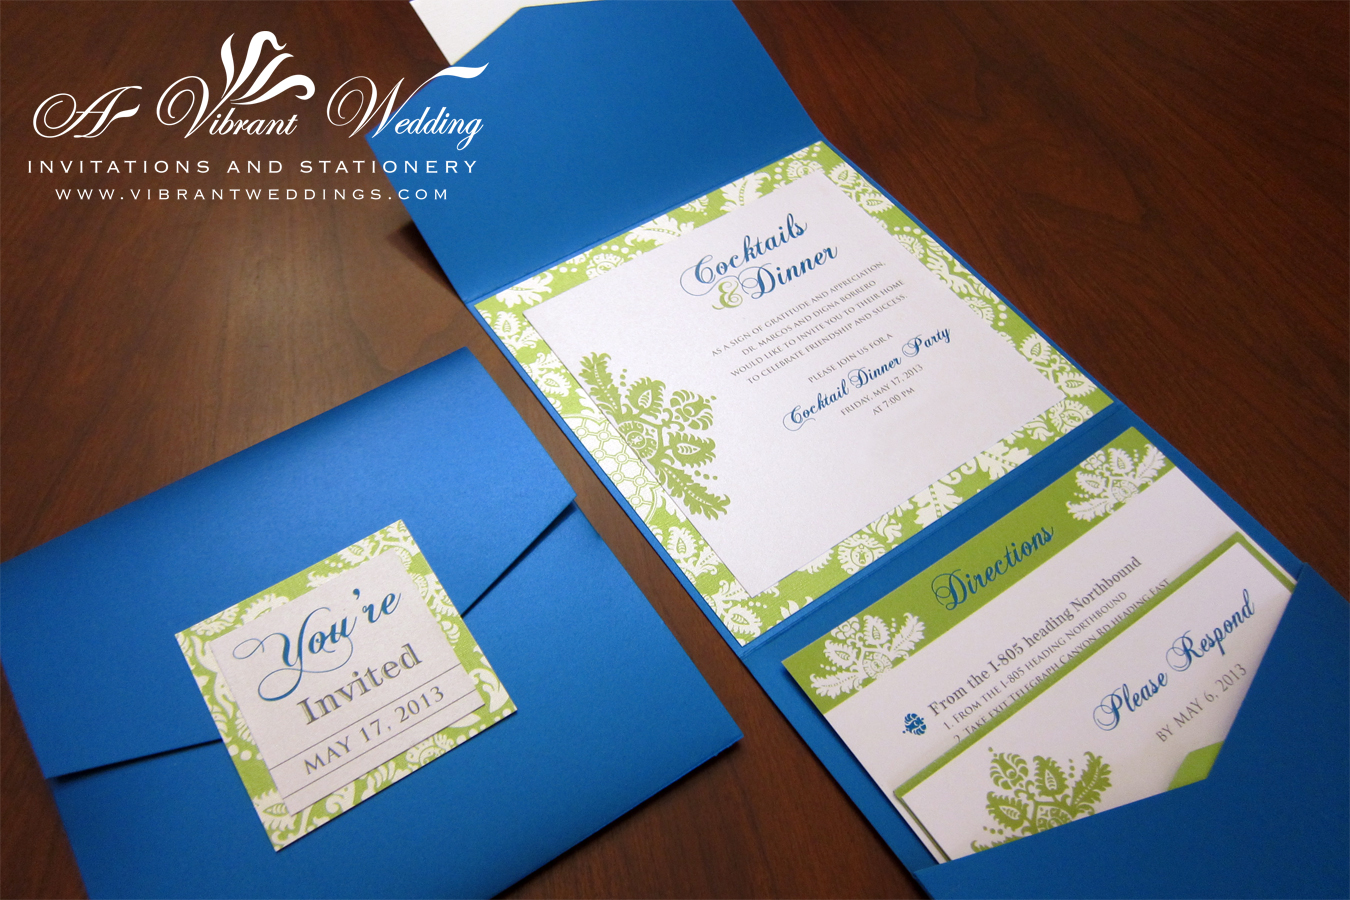 Wedding Invitation Designs Royal Blue: A Vibrant Wedding Invitations